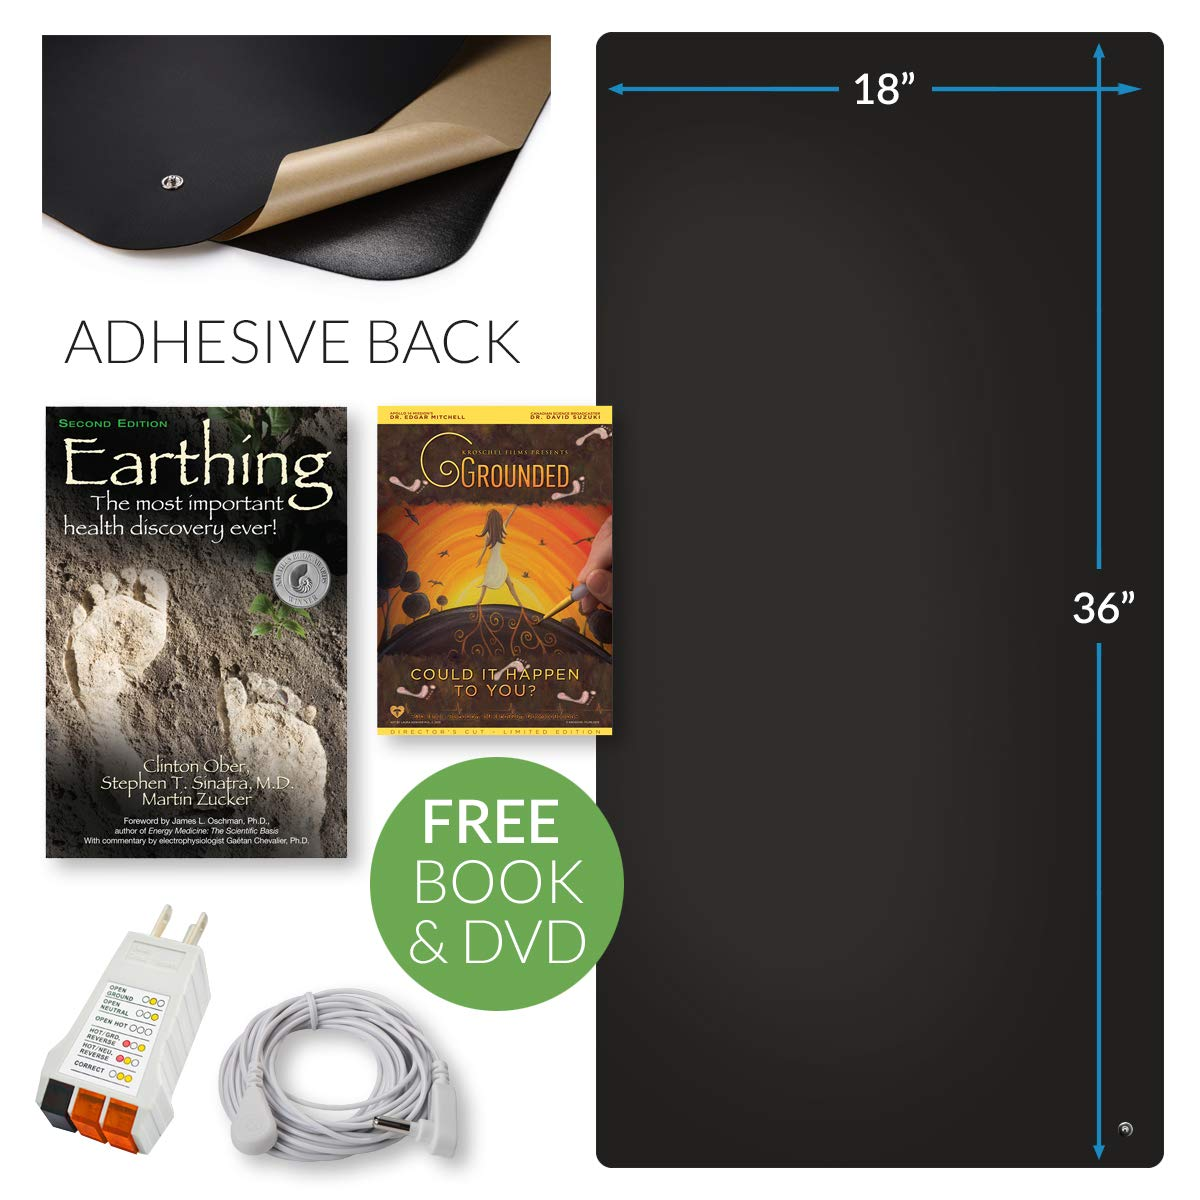 Earthing® Office Chair Mat Kit - Stay Grounded Indoors - Includes Mat, Cord, Adapter, Tester - Reduce Inflammation, Improve Sleep, Stress, and Anxiety - Earthing Book and Documentary DVD Included by Earthing